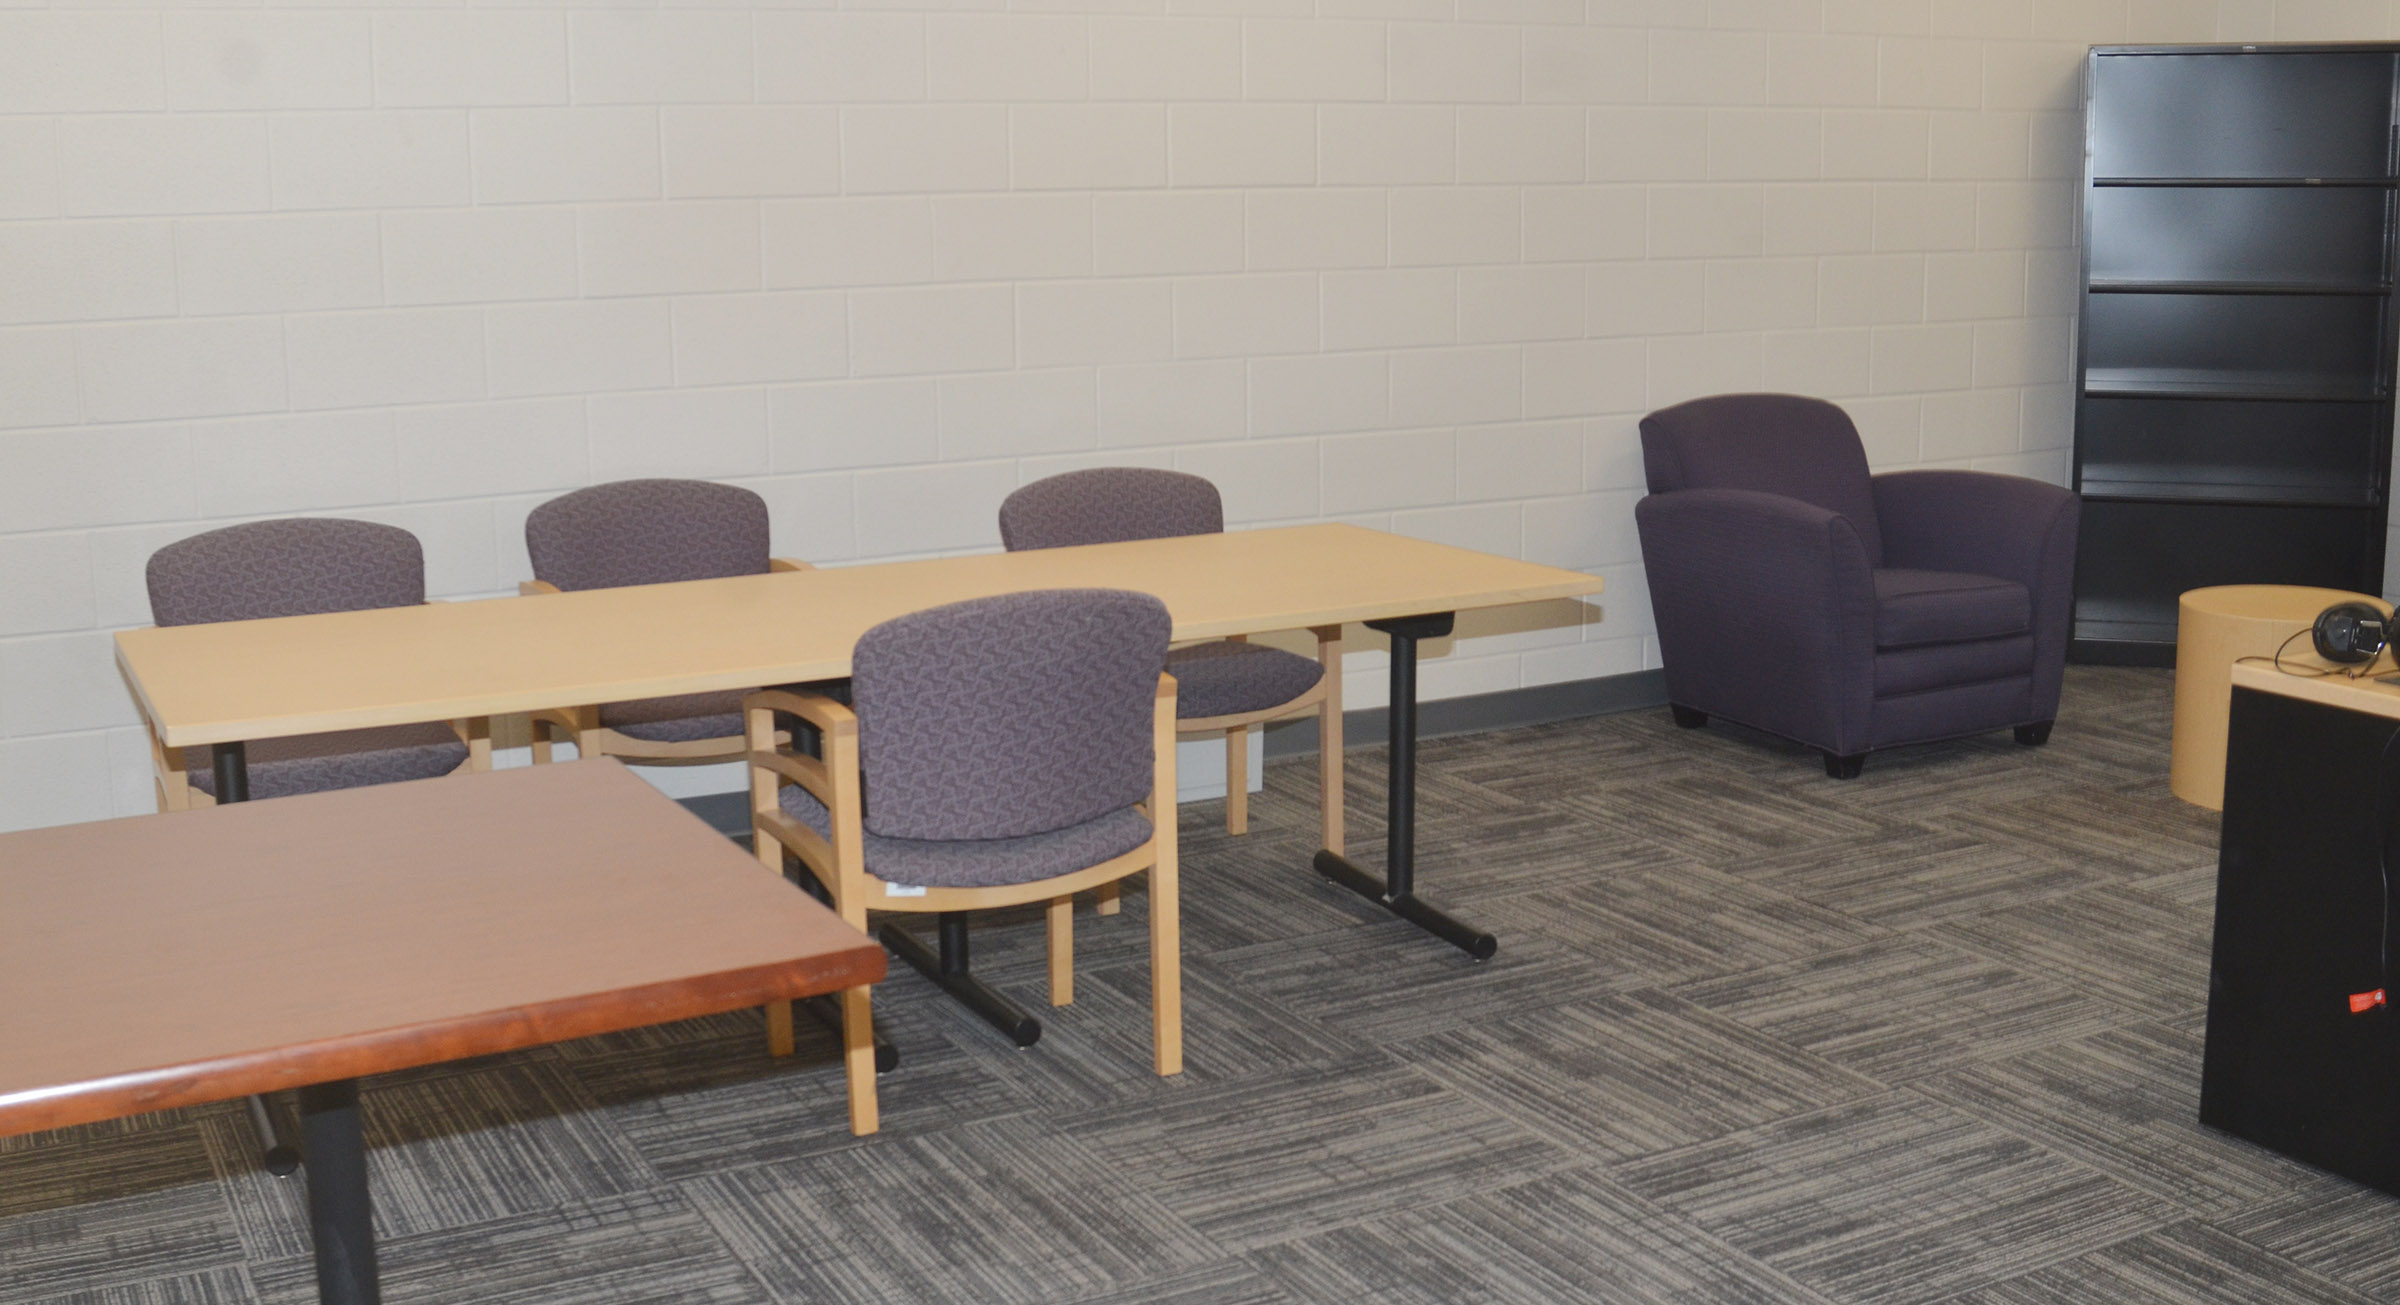 CES administrators received new office suites in the renovation, complete with new furniture.